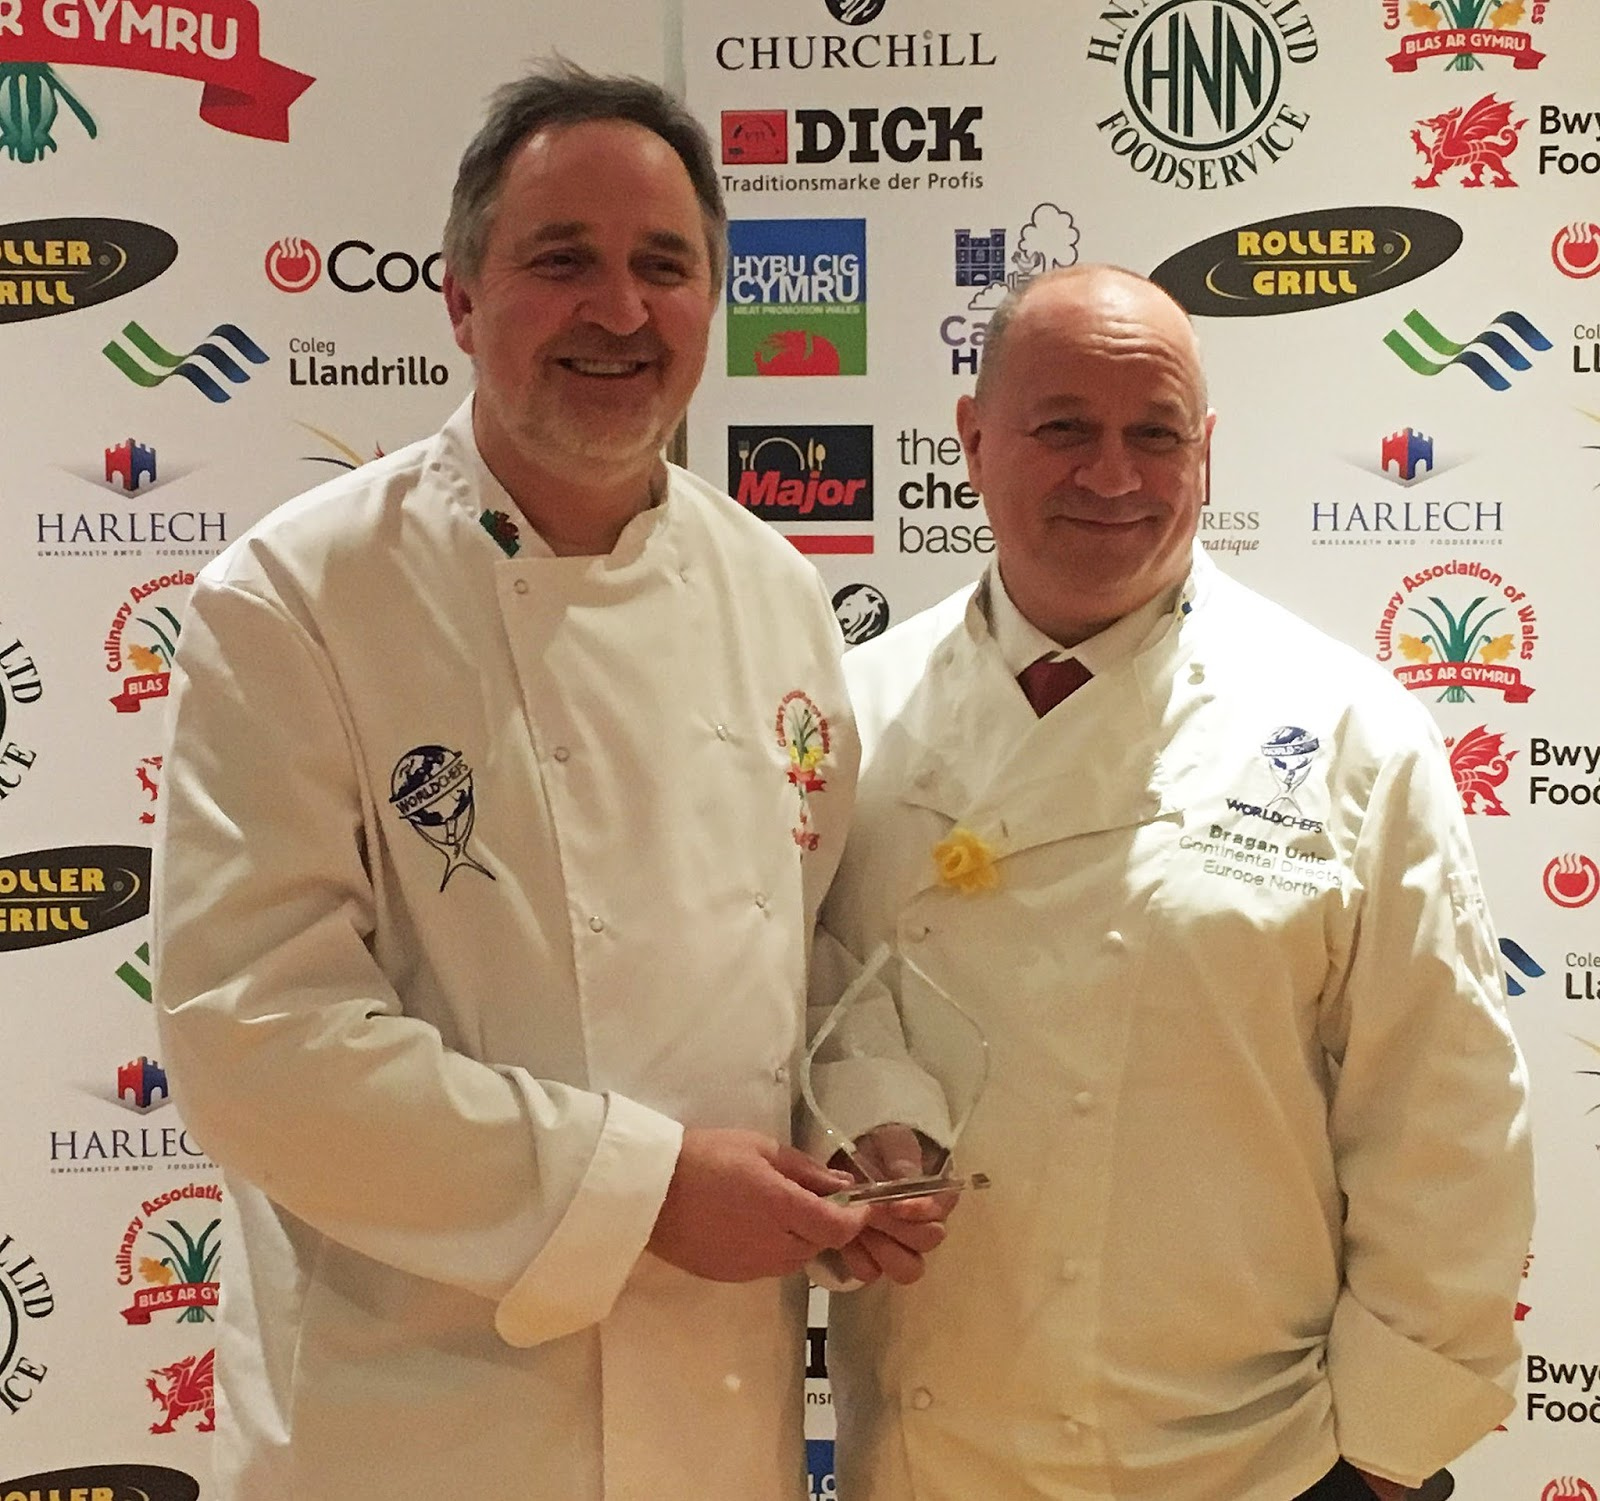 a94f216a5c1184 Dragan Unic (right) presents the Worldchefs